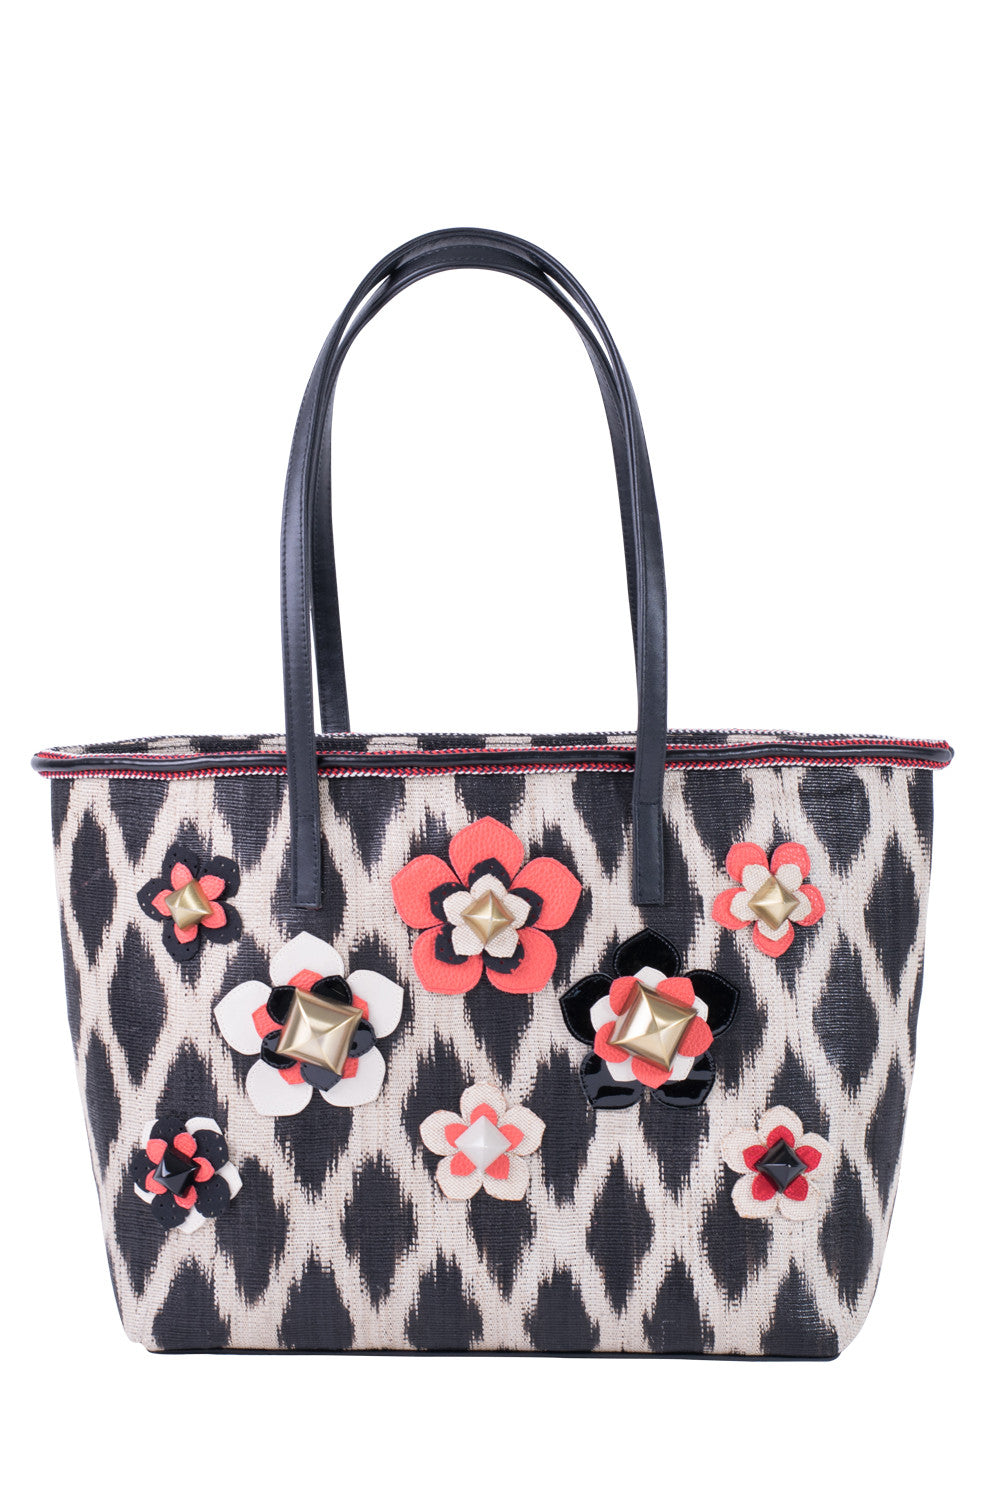 TINALAK Tote in Black with Red Flowers